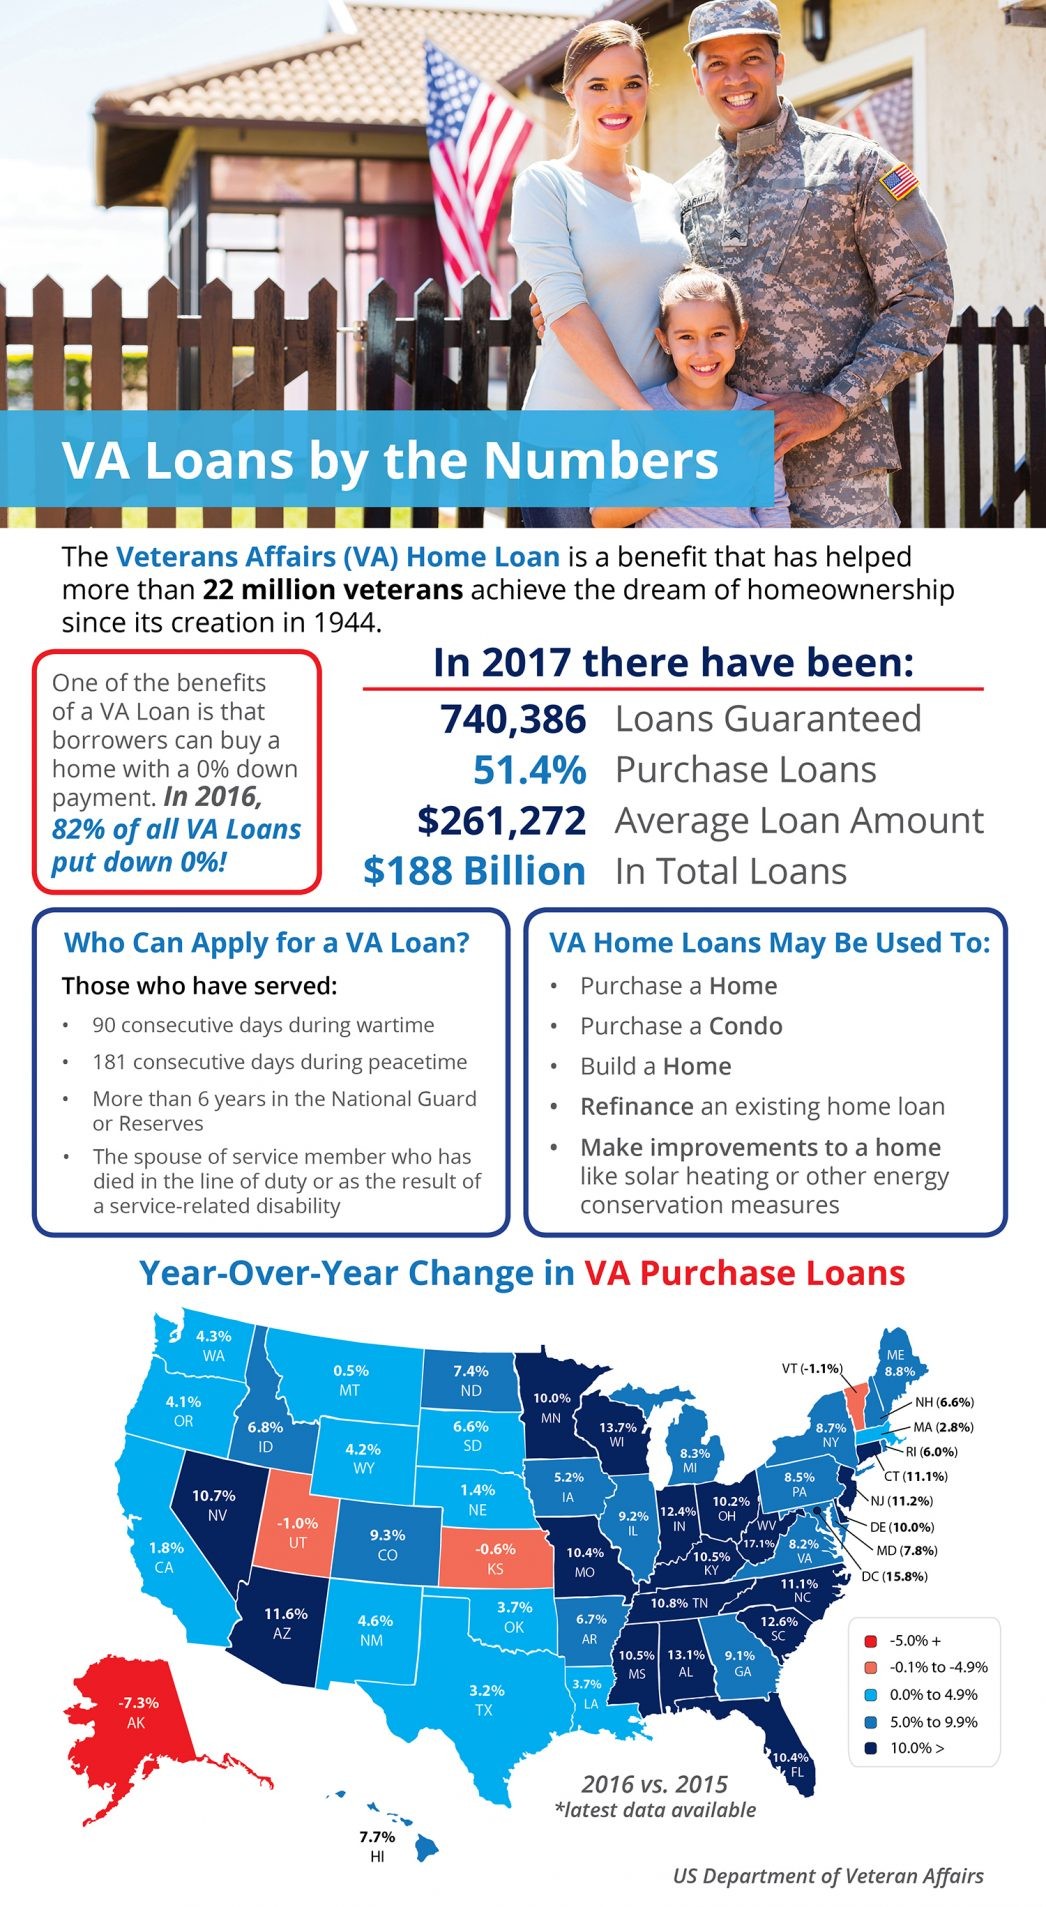 VA Loans By The Numbers 2017 Las Vegas